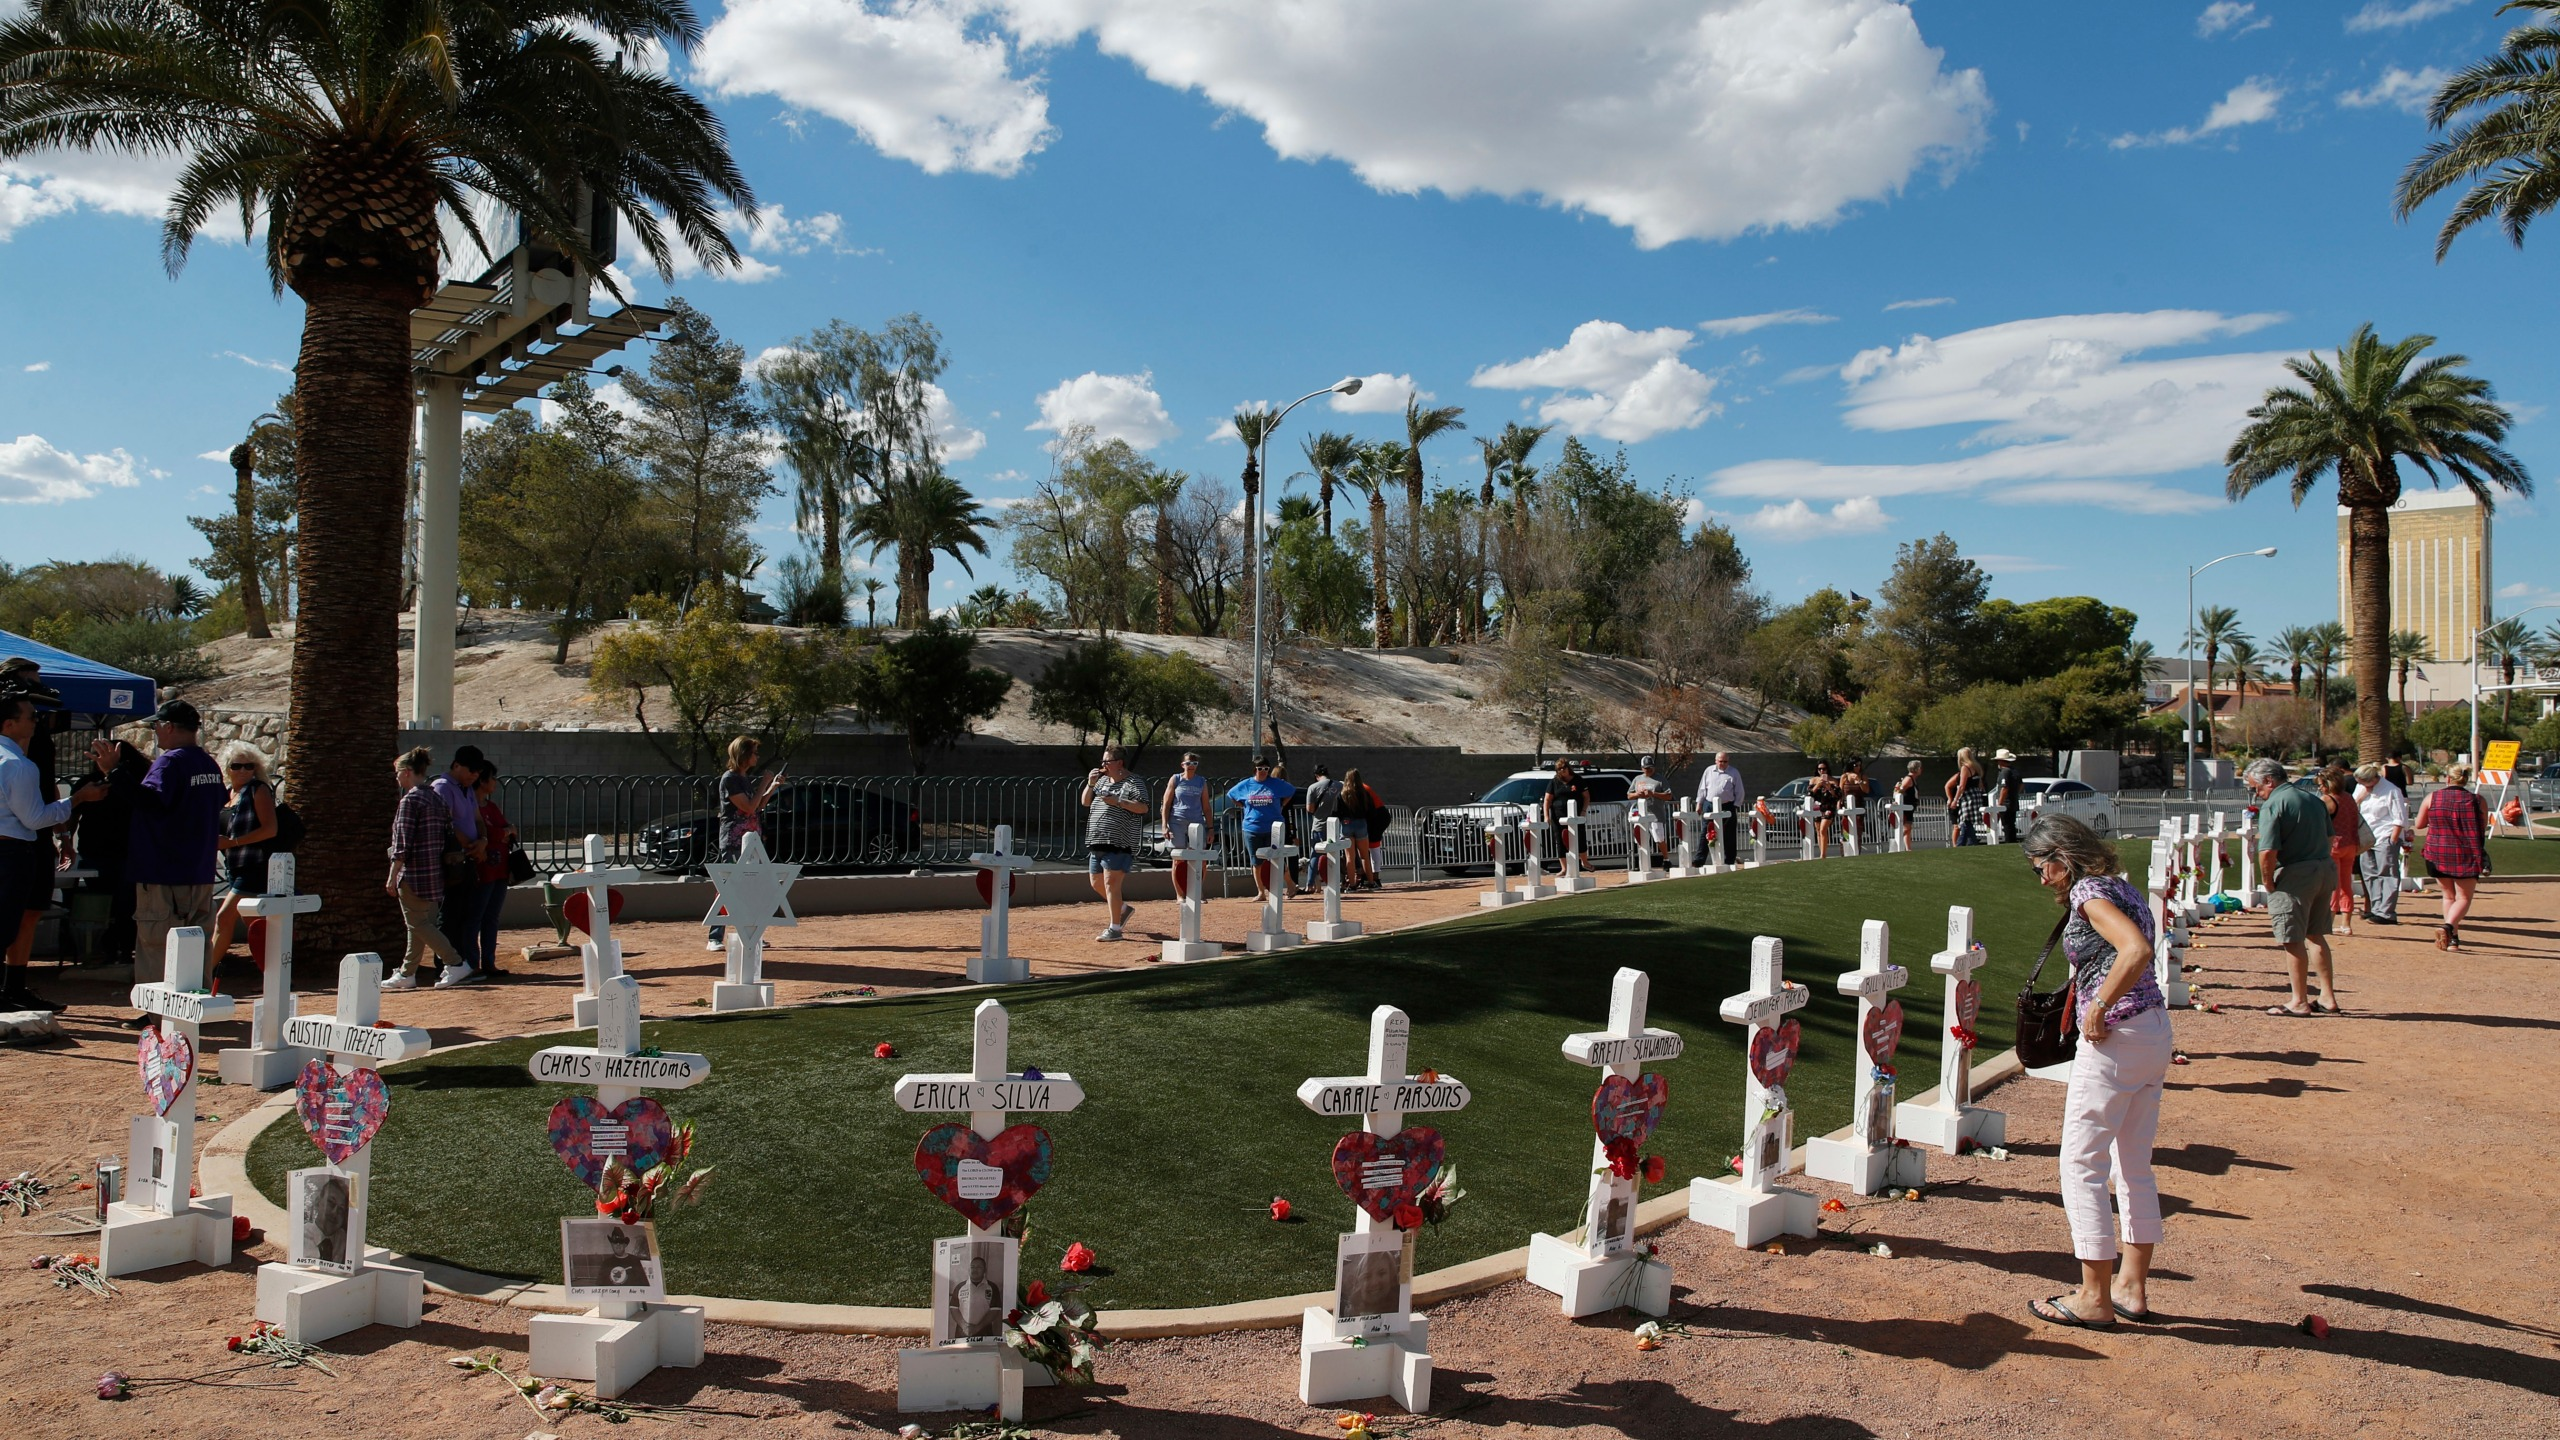 Las_Vegas_Shooting_93330-159532.jpg63912166